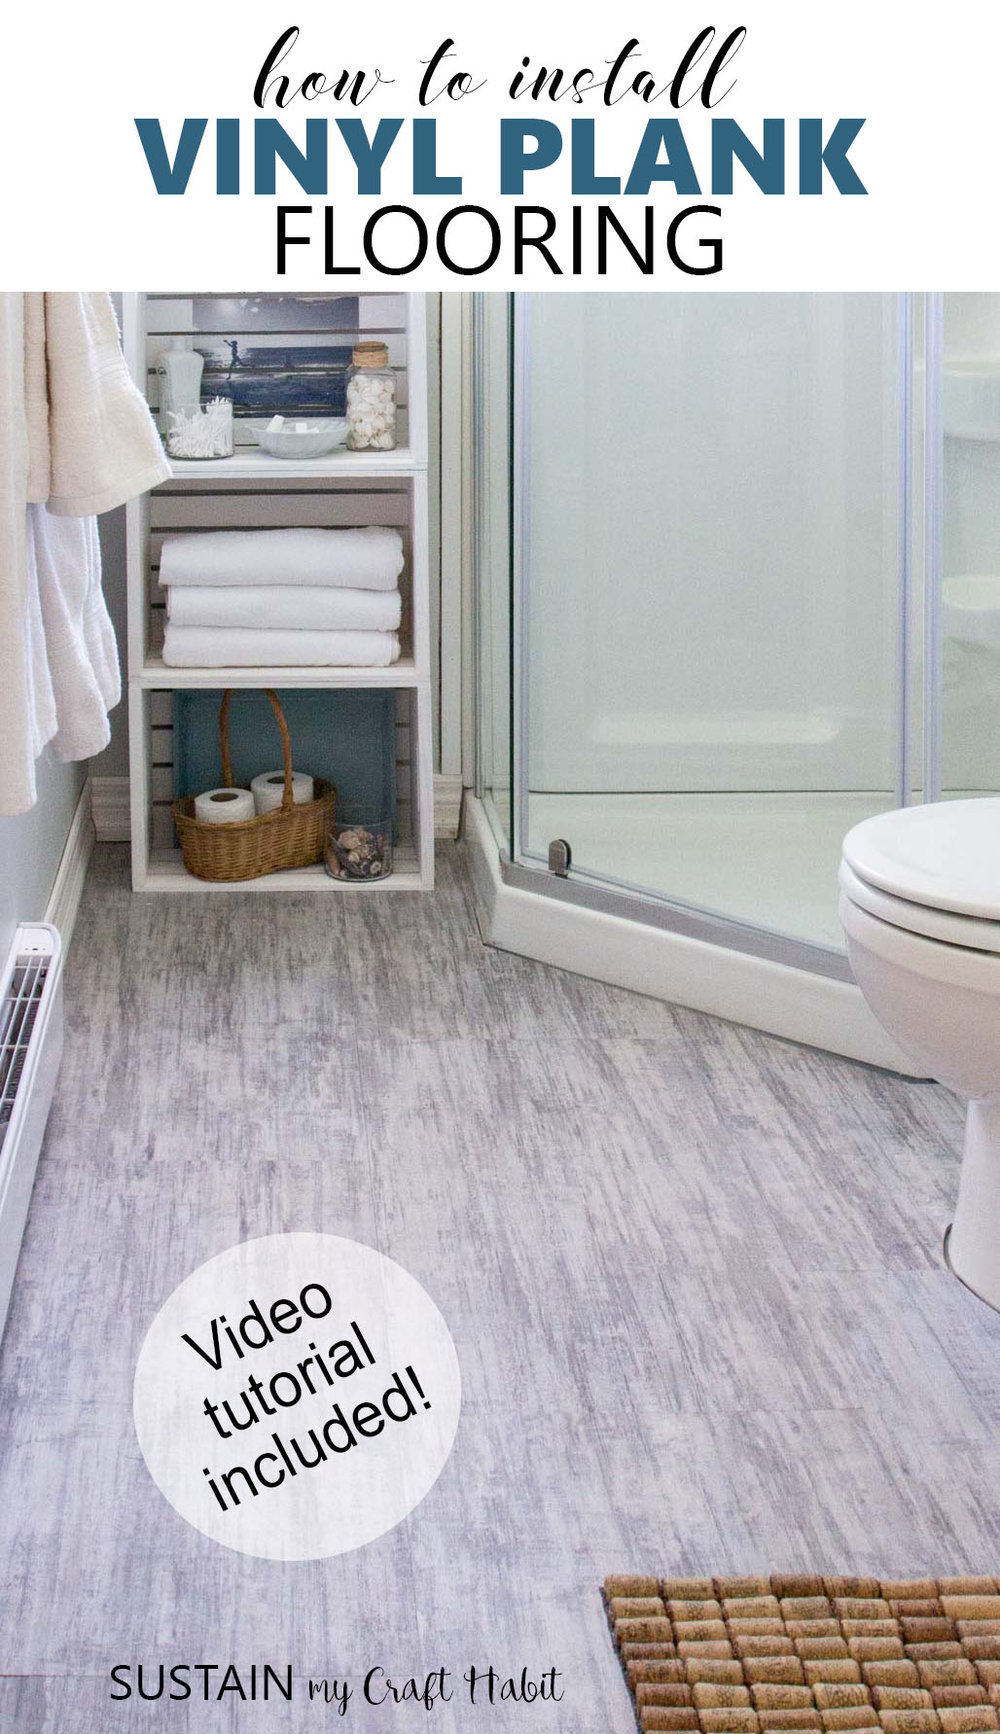 Learn how to install vinyl plank flooring with step-by-step video tutorial. Great option for a bathroom, basement or kitchen and can go over existing tile! #allureprojectsucces [sponsored]